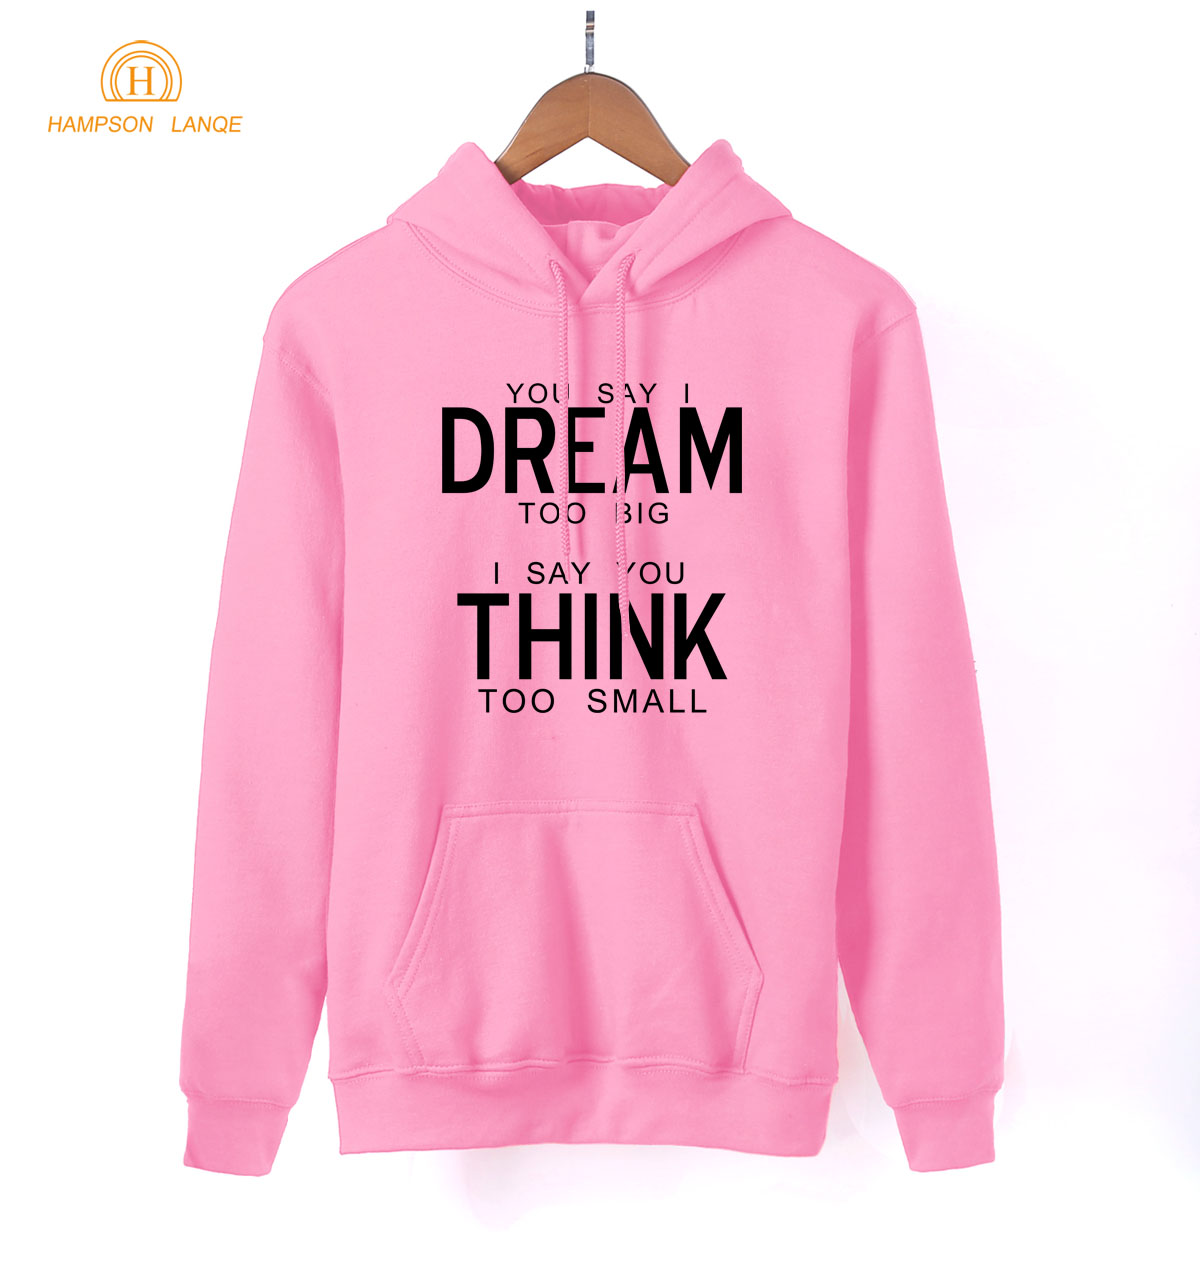 You Say I Dream Too Big I Say You Think Too Small Funny Hoodies Lady 2019 Spring Autumn Kawaii Pink Sweatshirts K-pop Pullovers